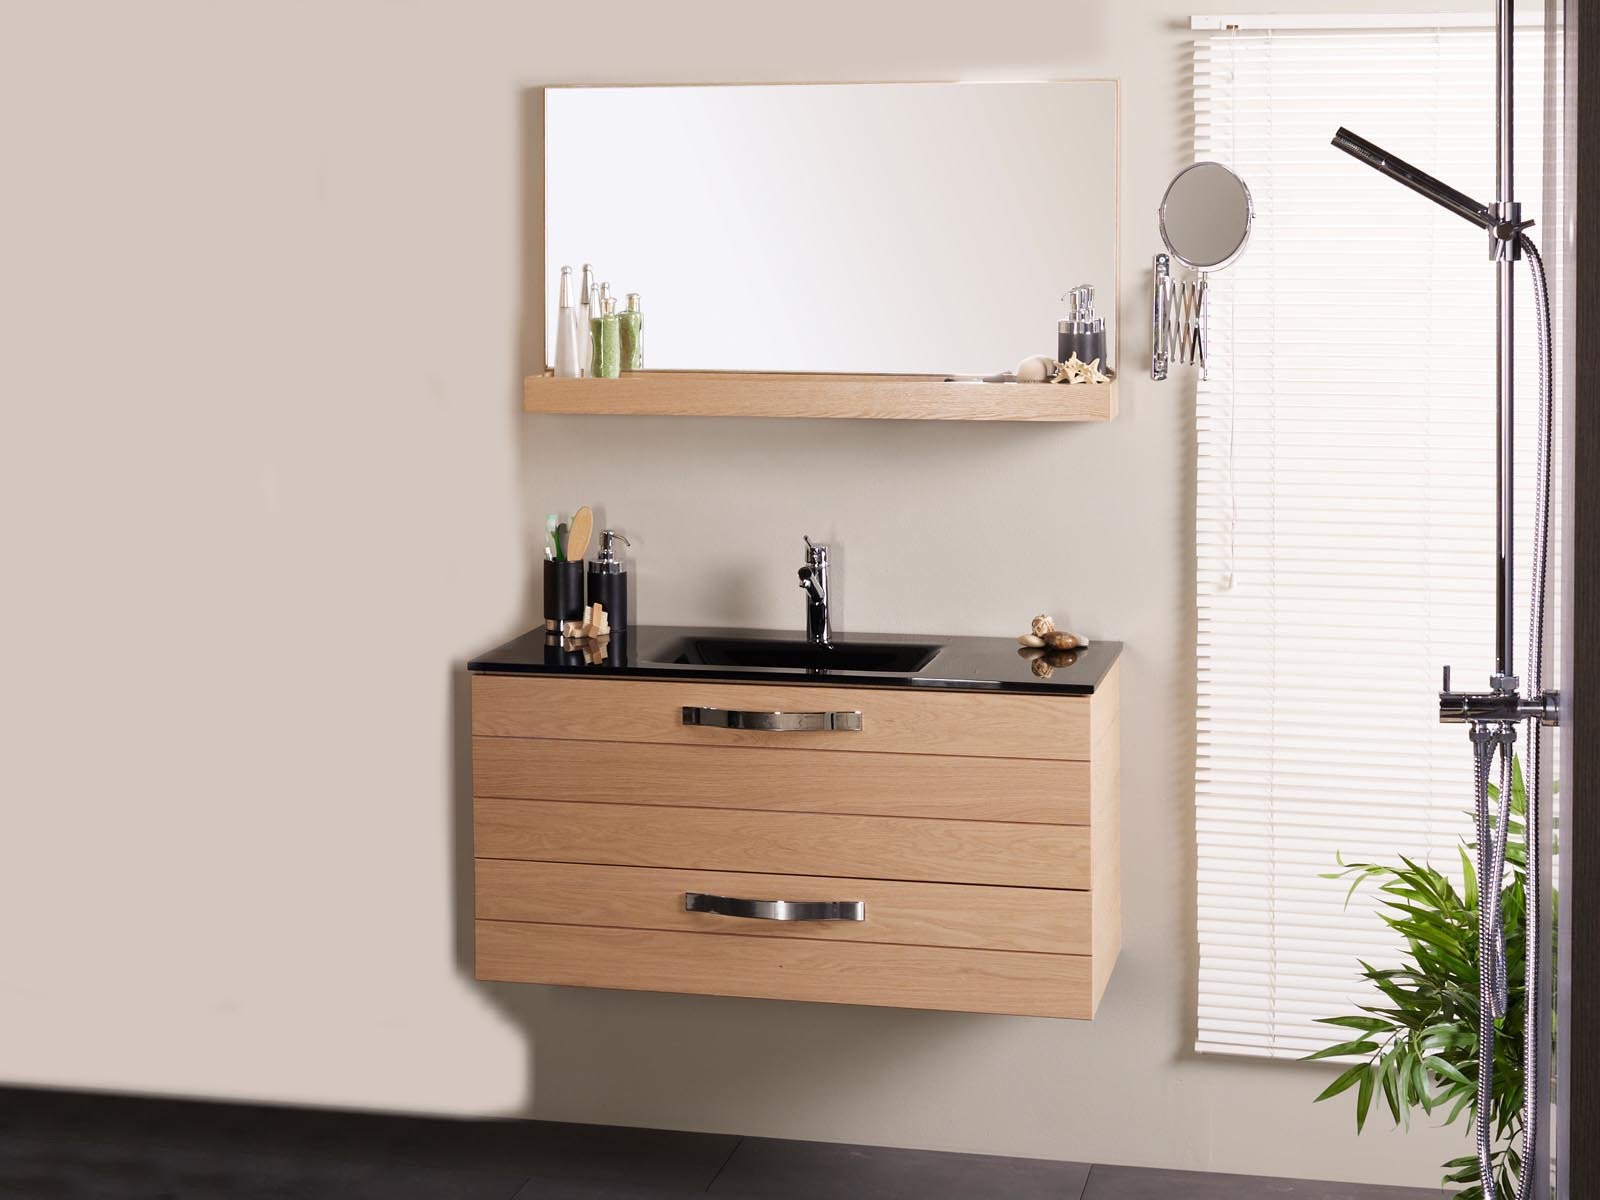 armoire miroir salle de bain lapeyre armoire id es de d coration de maison gvnzkzylqa. Black Bedroom Furniture Sets. Home Design Ideas